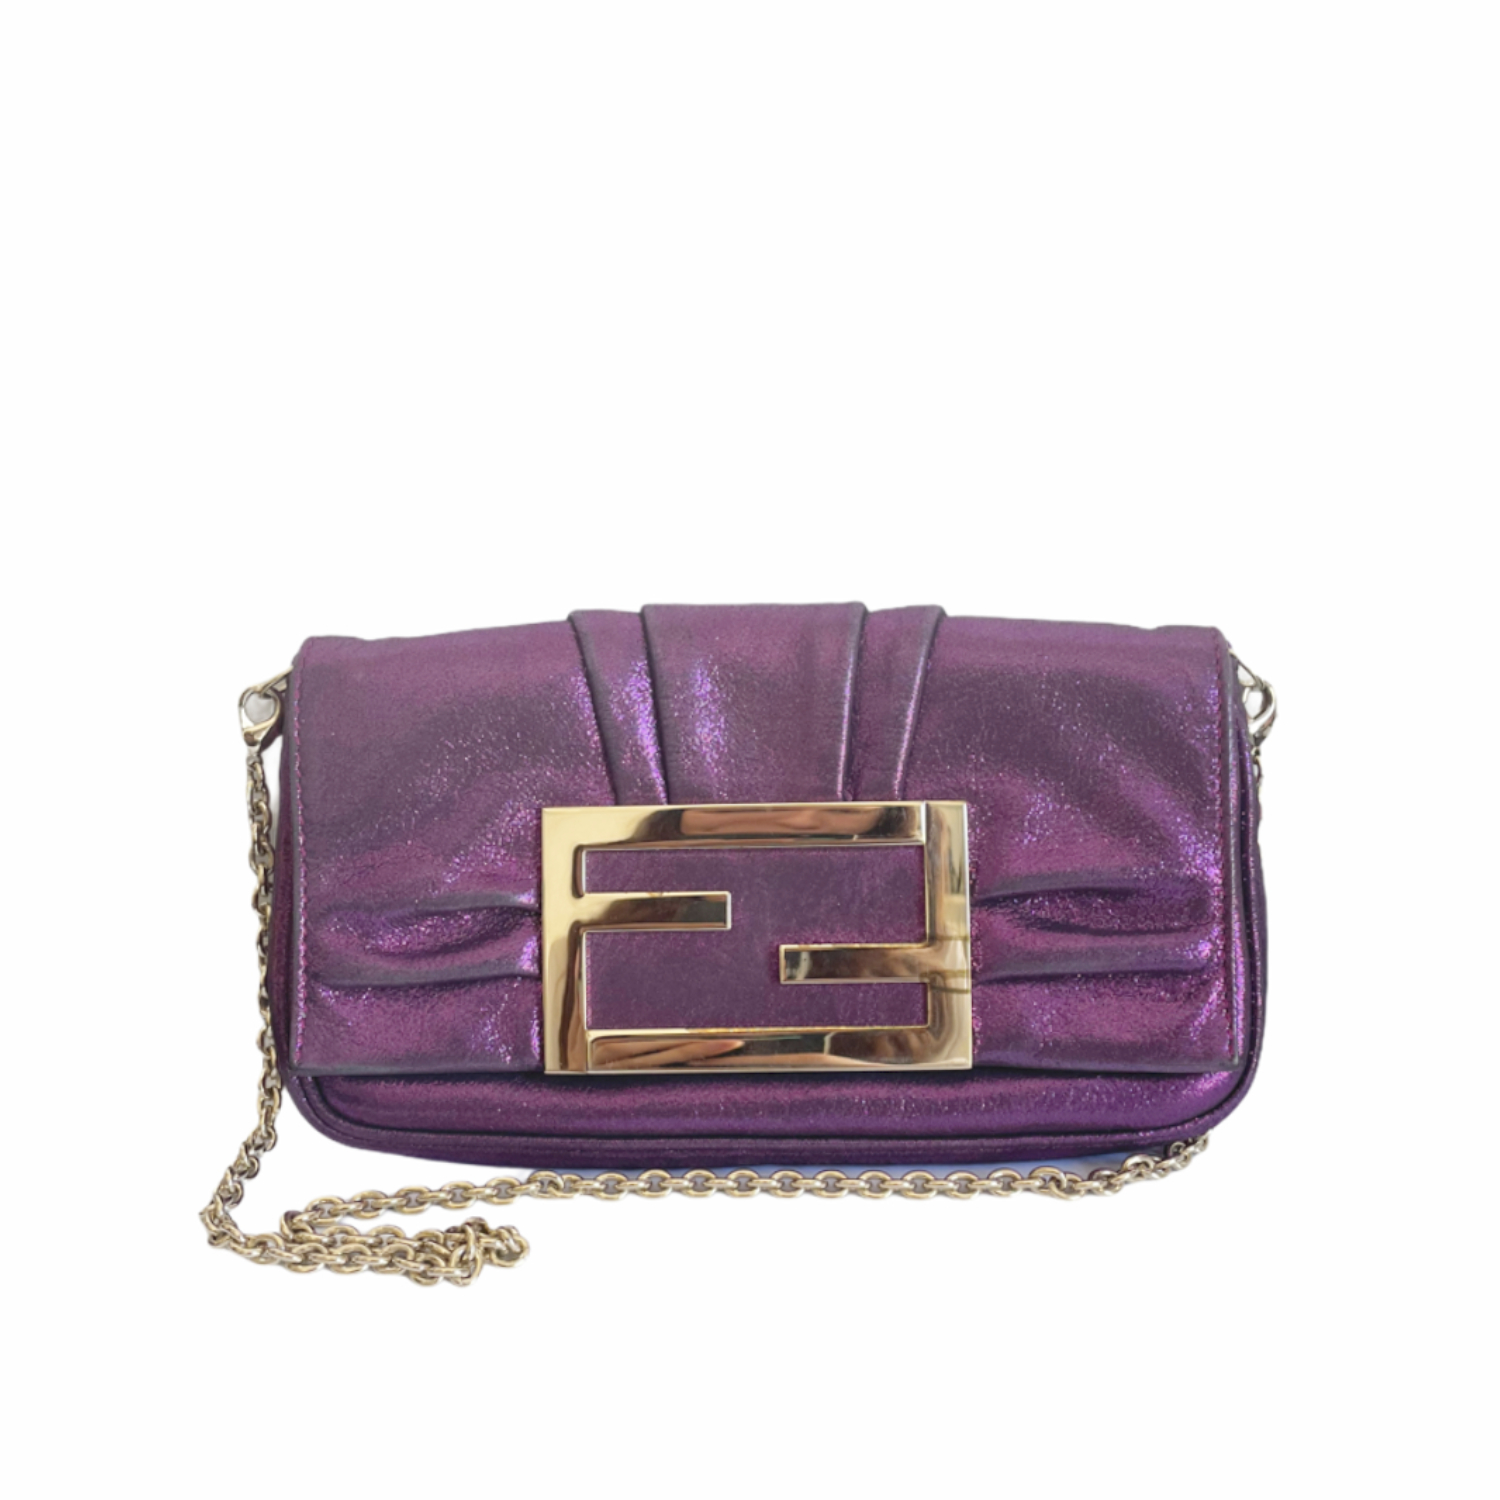 Fendi Shiny Mini Shoulder Bag in Purple and Gold | NITRYL